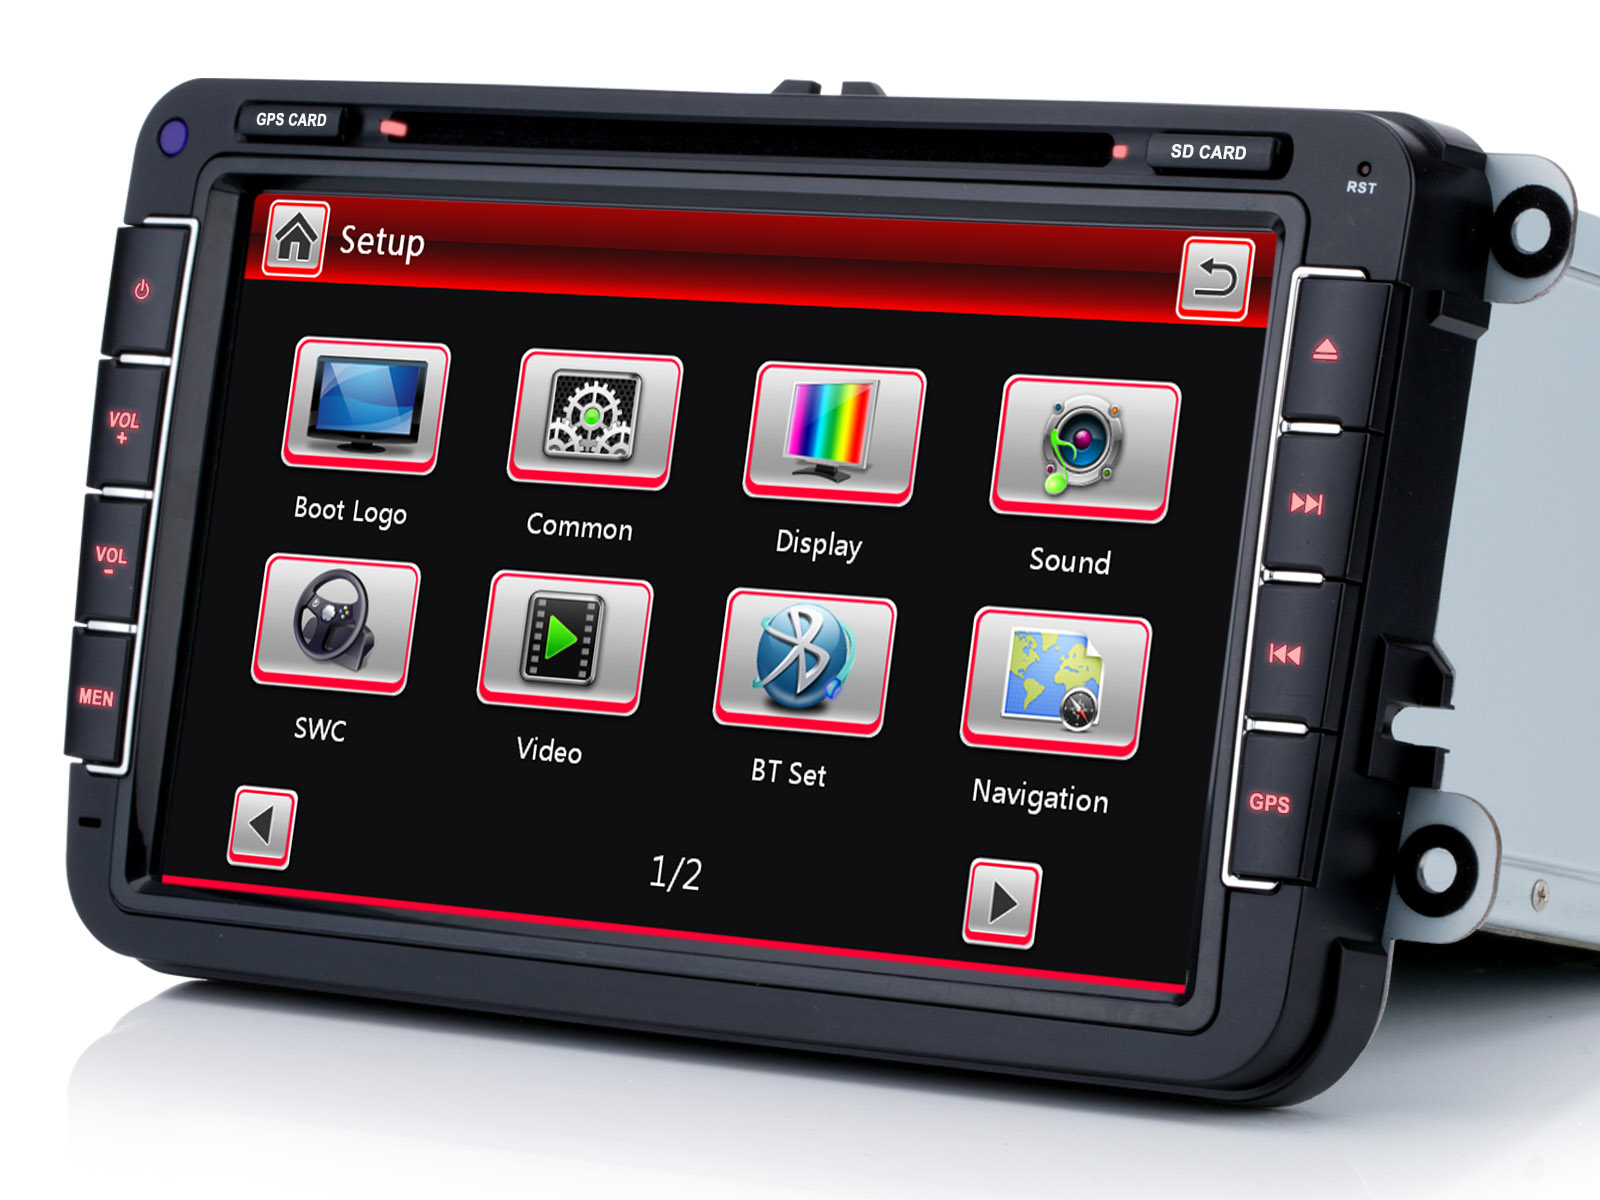 r ckfahrkamera 8 autoradio nav dvd gps f r vw golf 5. Black Bedroom Furniture Sets. Home Design Ideas